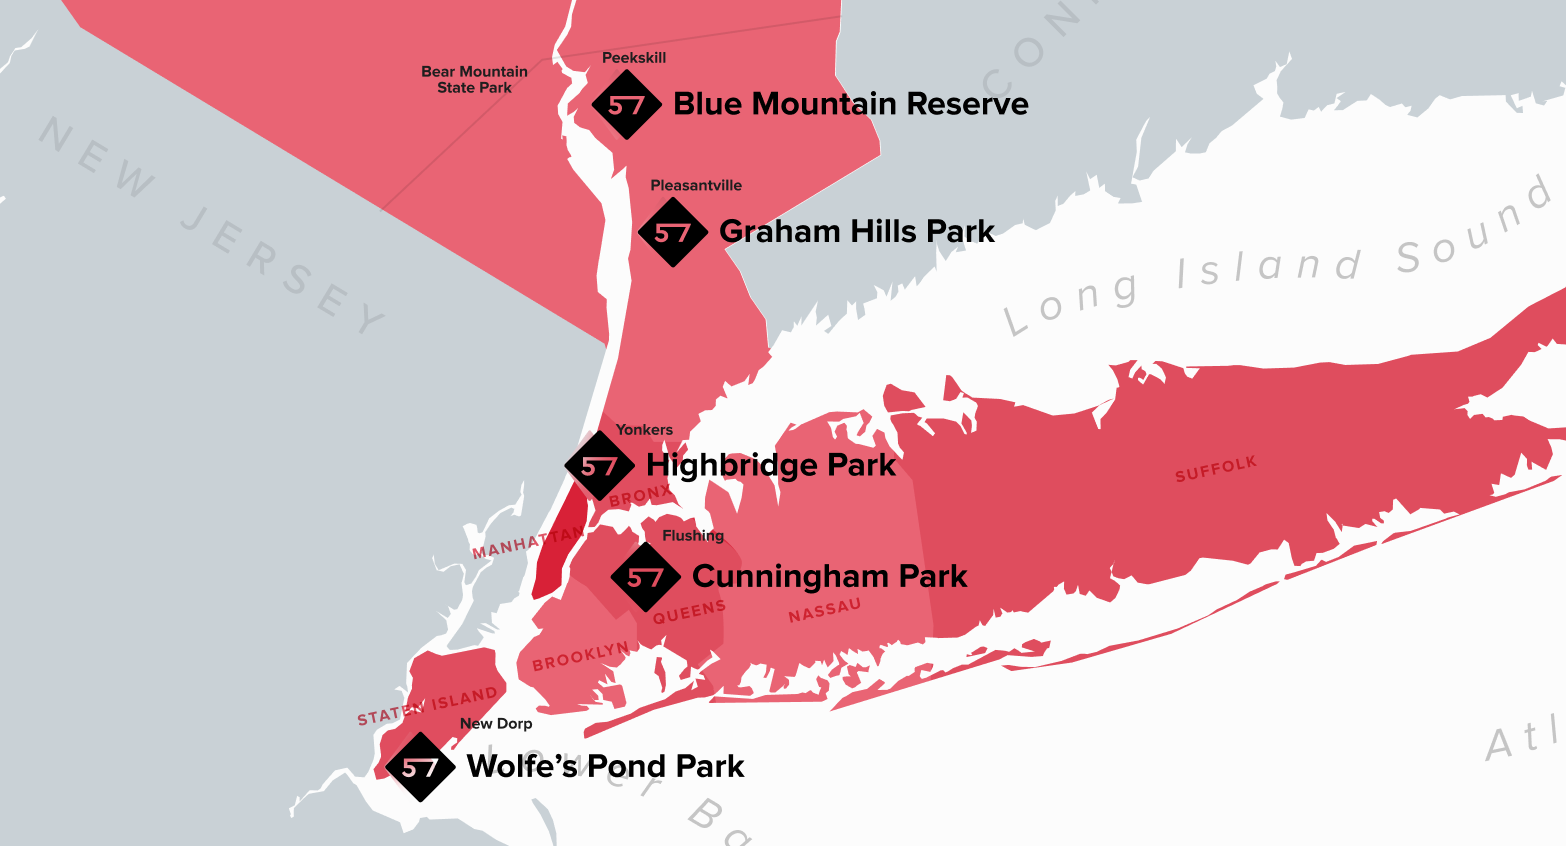 57hours map of the best places to MTB around NYC.